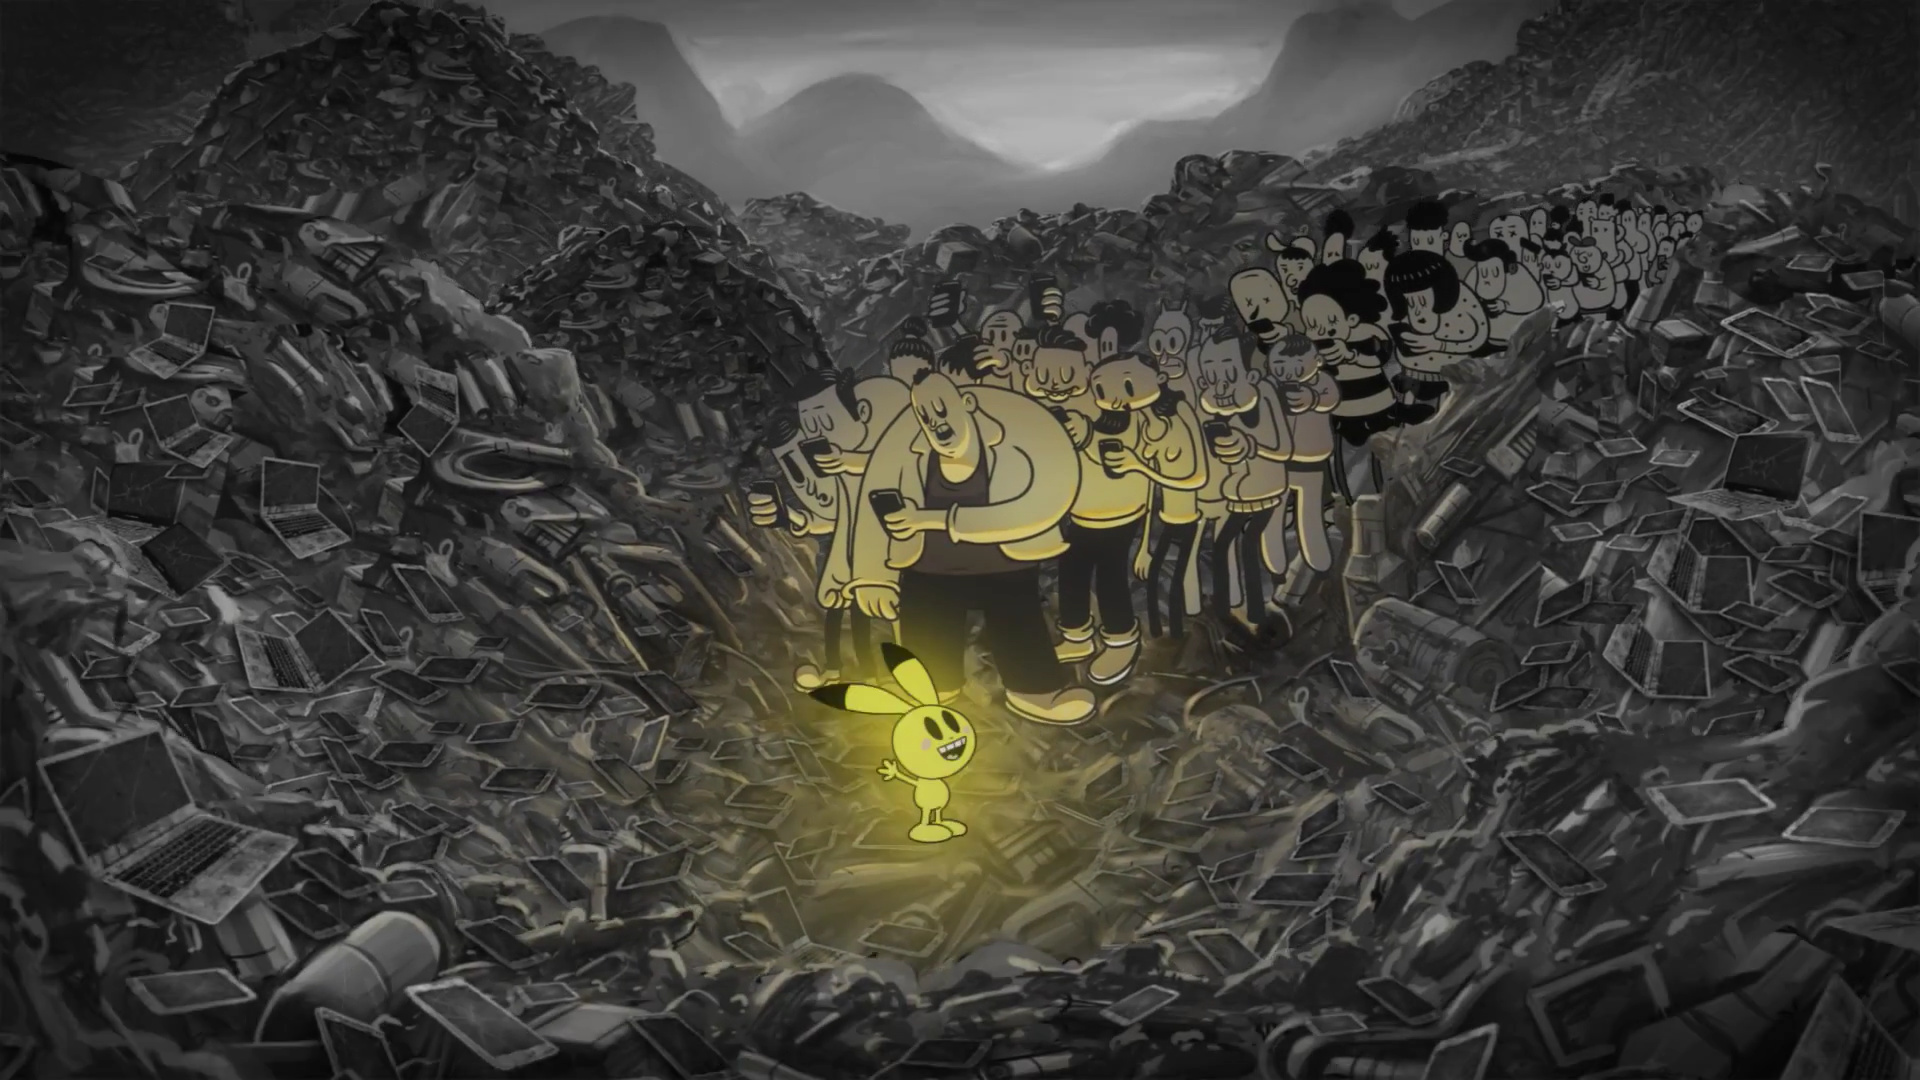 Screenshot from Moby video - Pokemon Go - Are You Lost In The World Like M